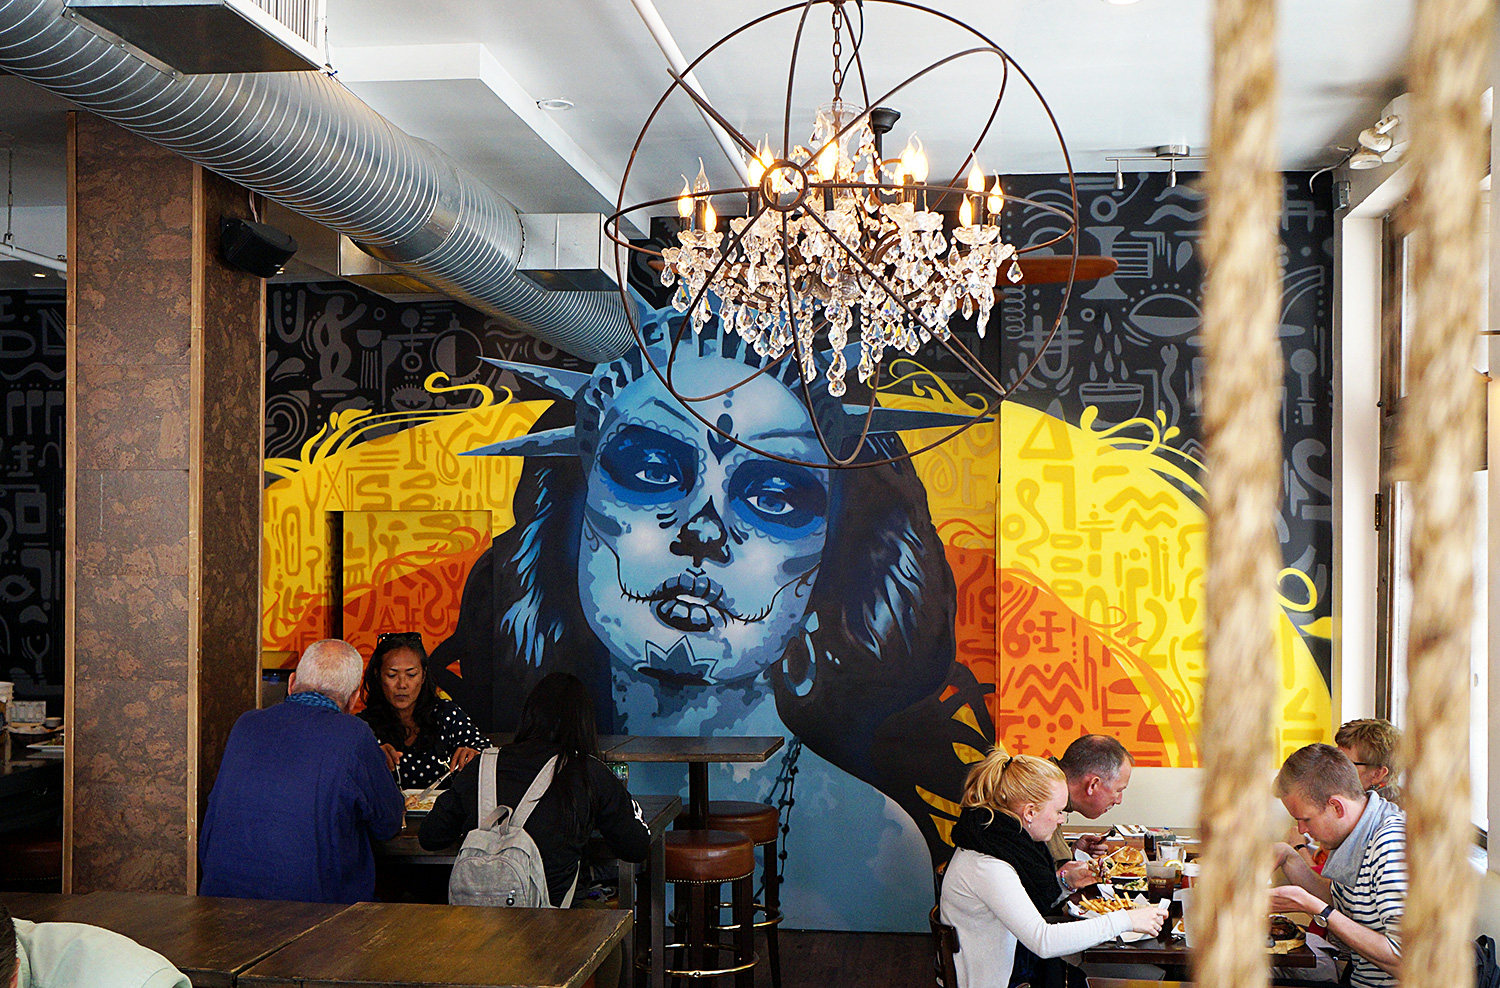 Interior Street Art Mural Portrait